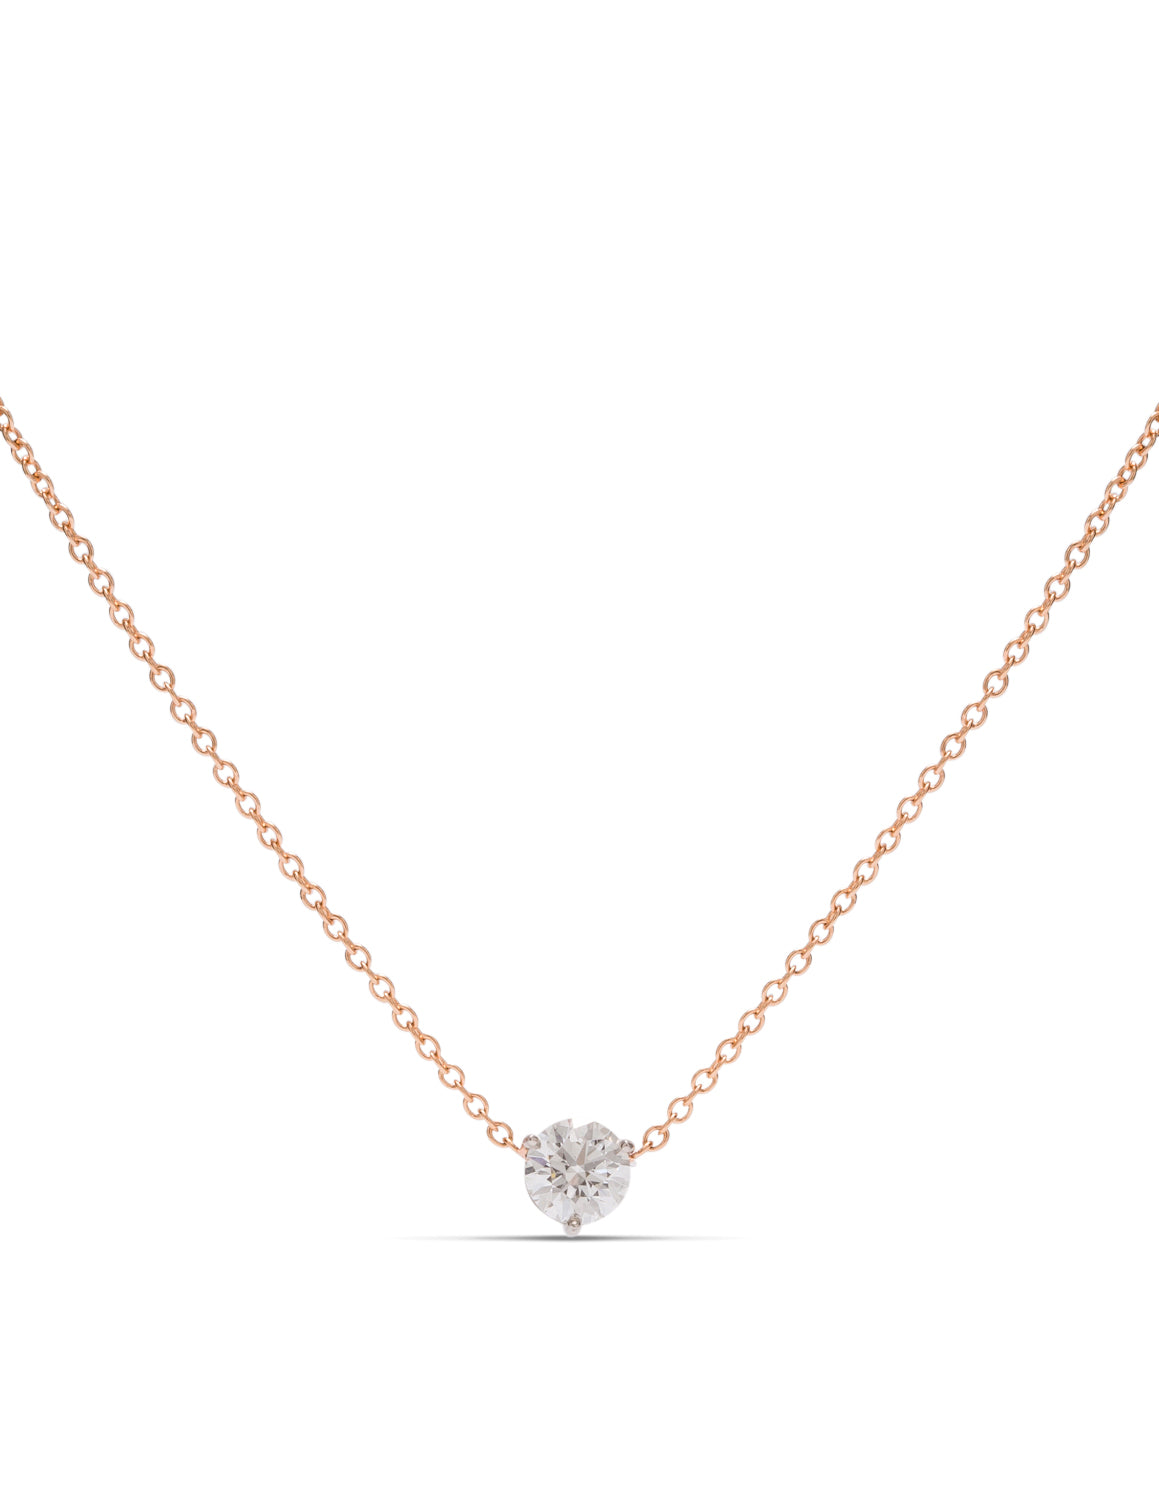 18k Rose Gold & Platinum Hearts on Fire Diamond Necklace - Charles Koll Jewellers